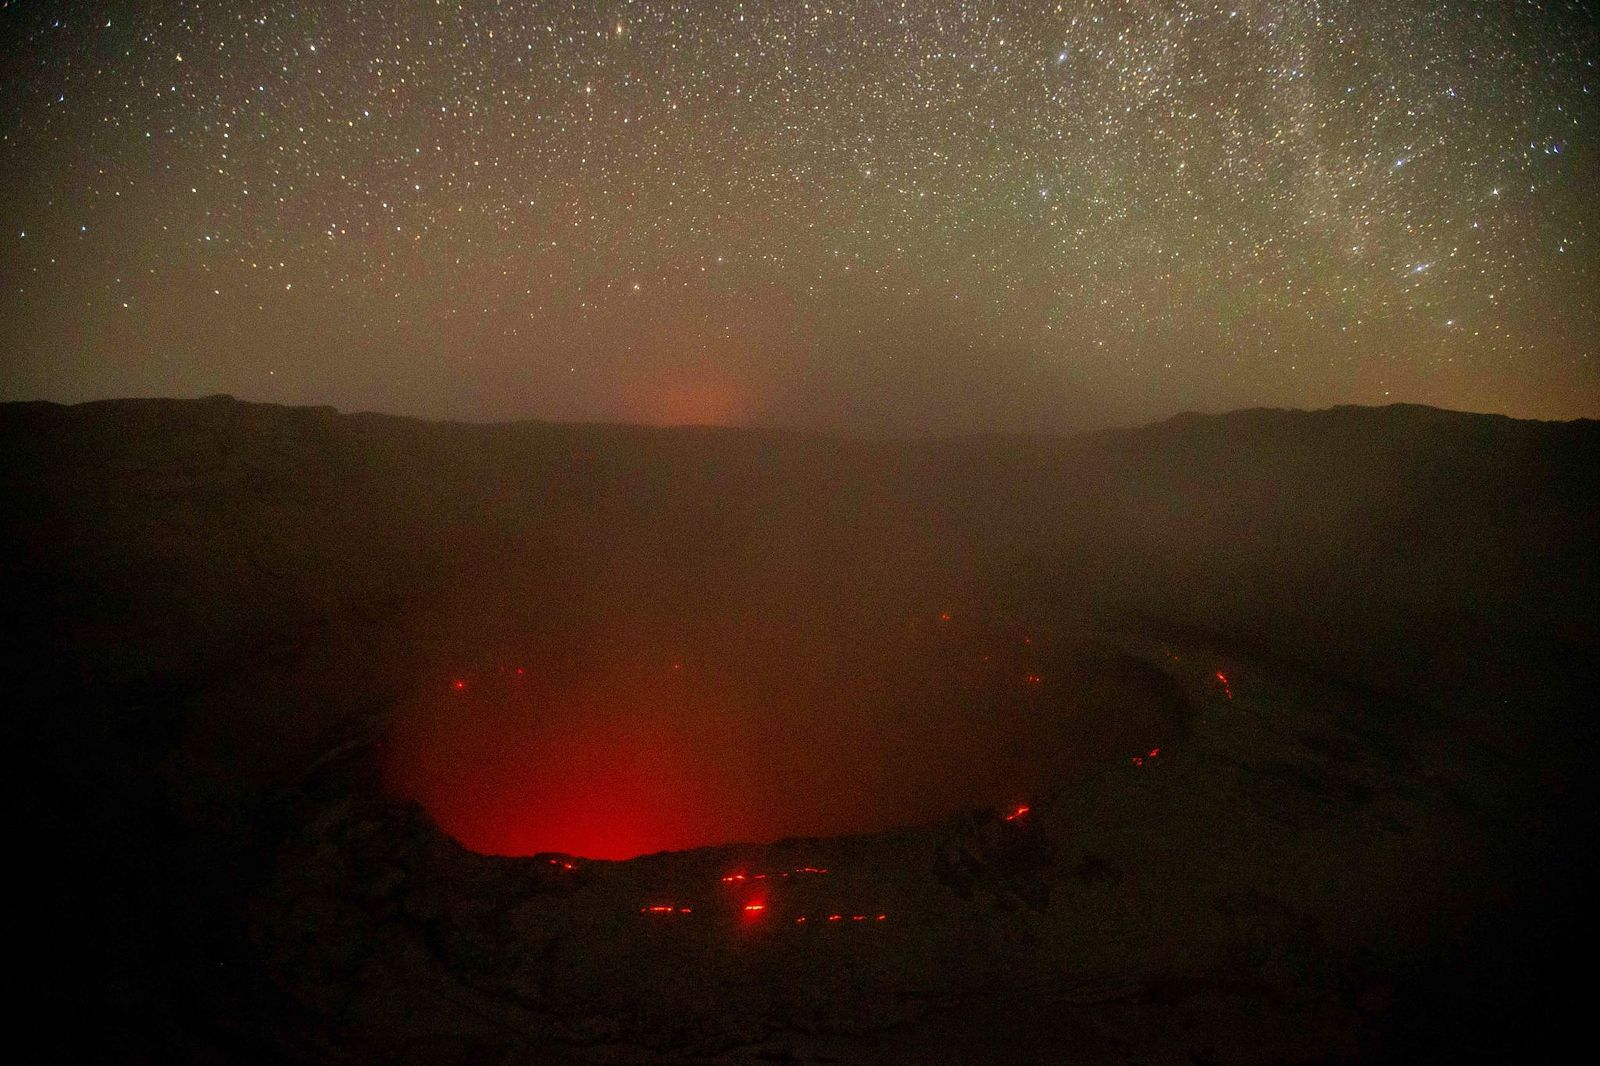 Nyiragongo summit - view of the glowing crater during the night of 06.12.2021 - Photo by Arsène T. SADIKI via Ch.Balagizi